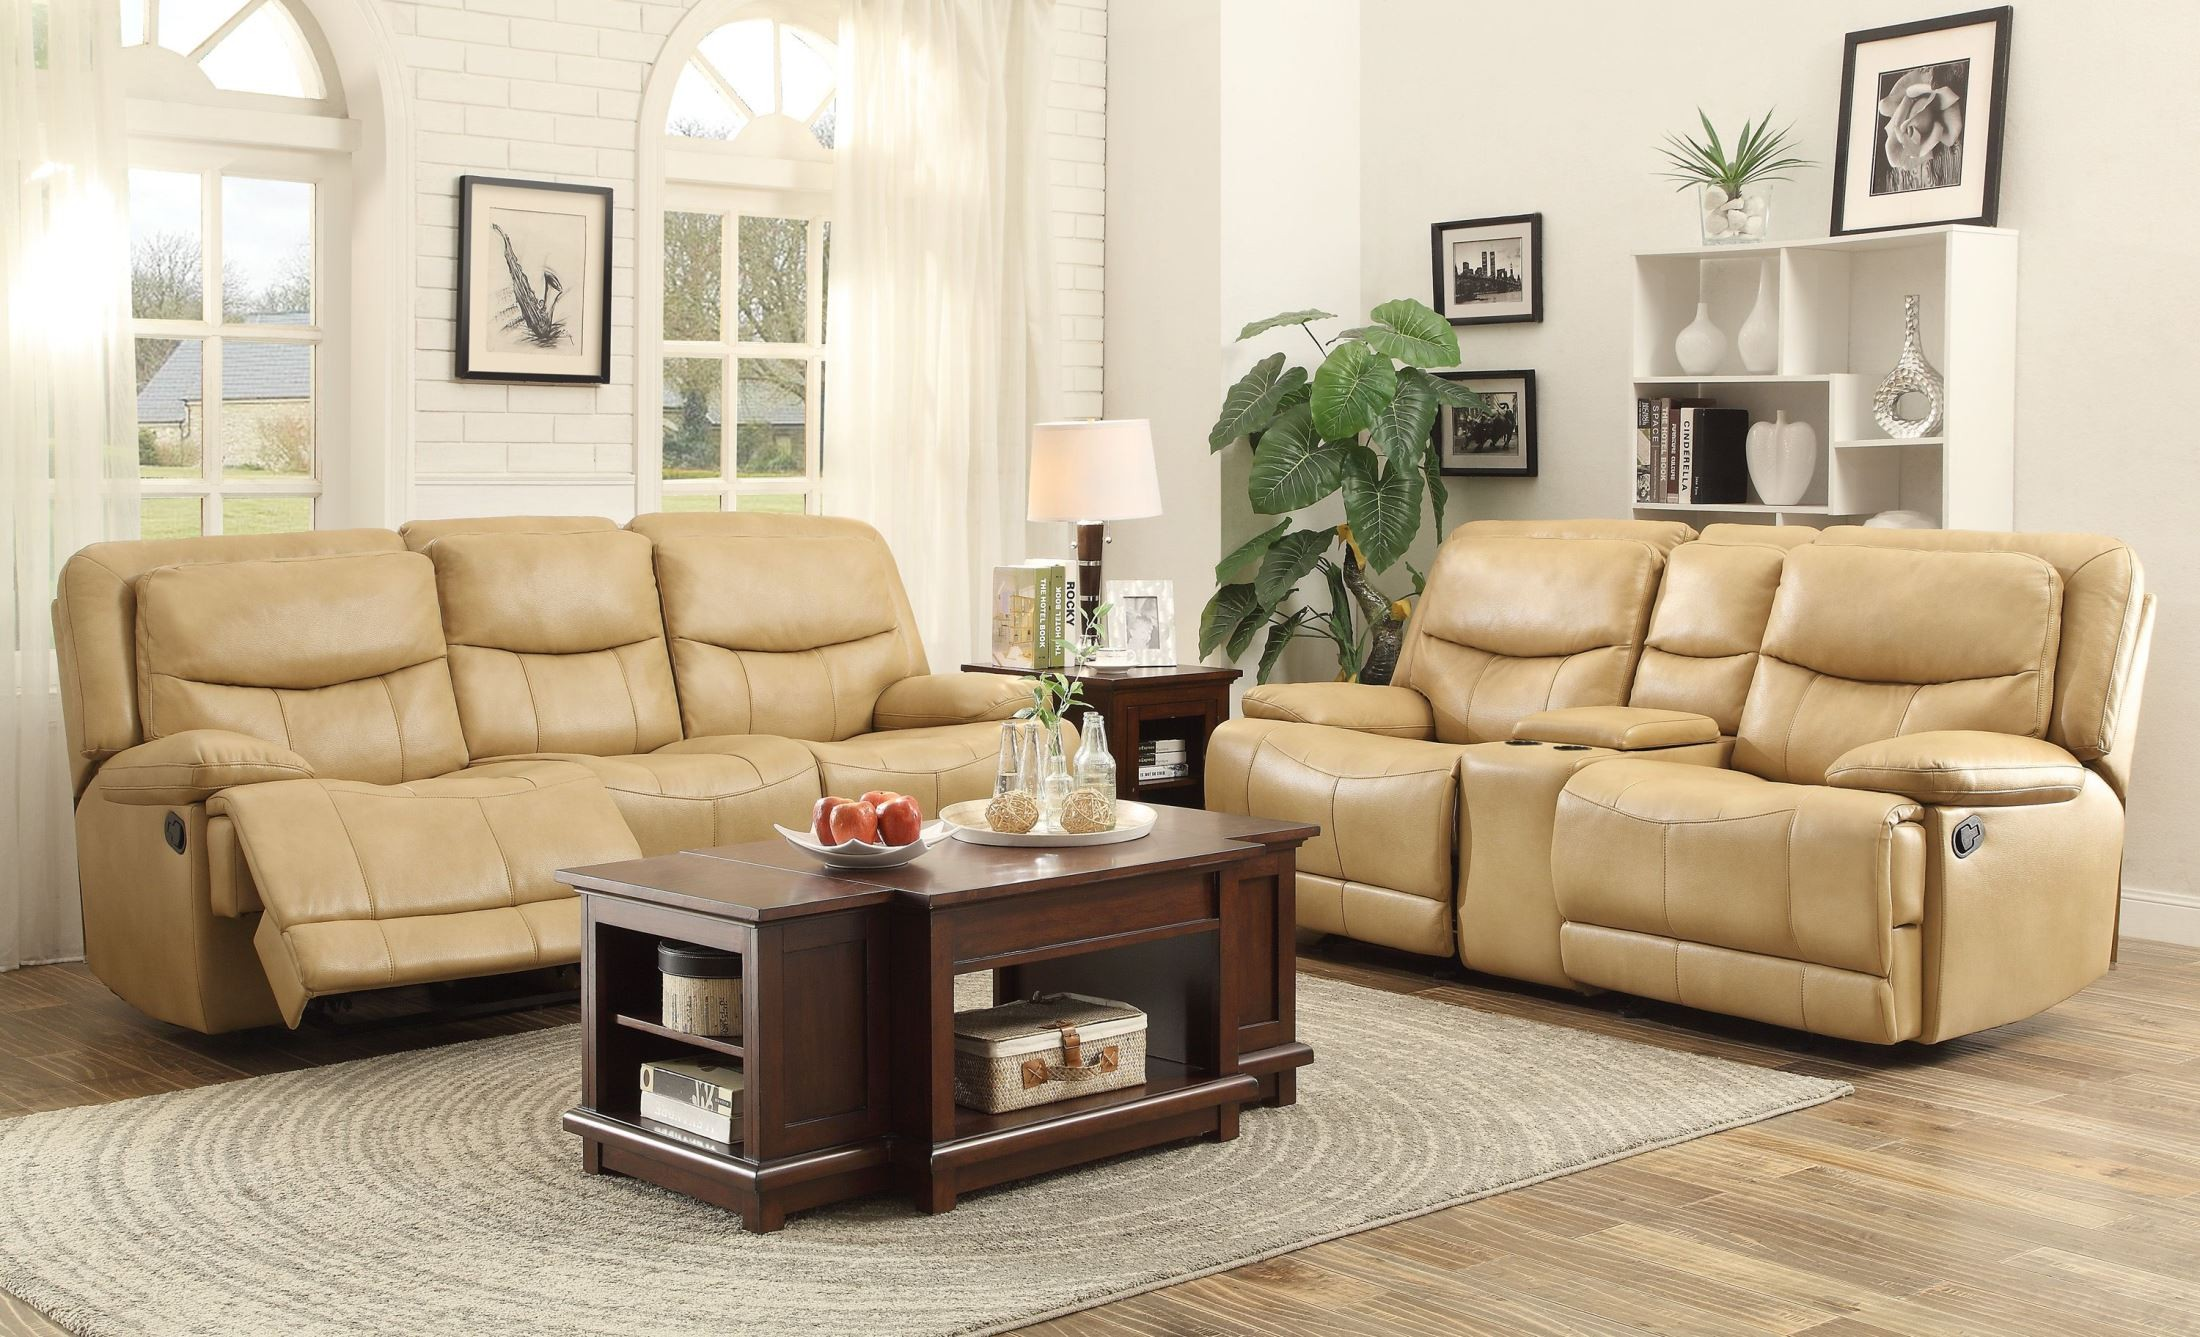 Risco honey double reclining living room set from for Double chairs for living room